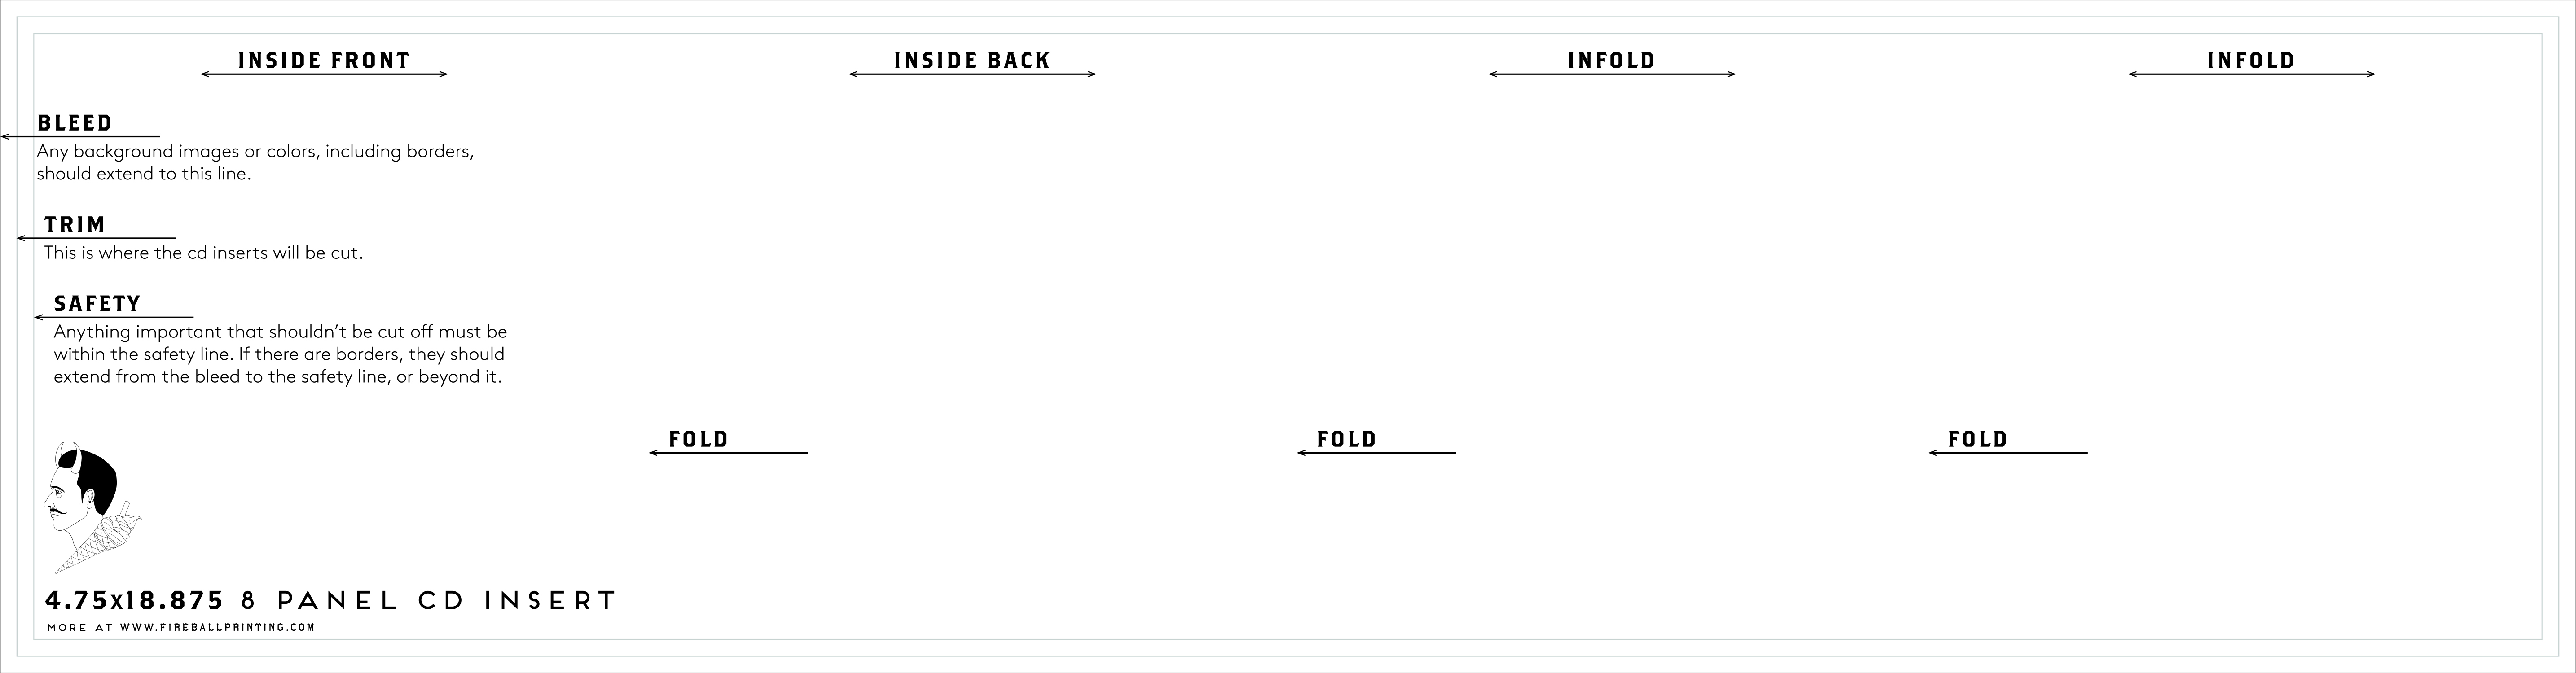 Cool 12 Page Booklet Template Big 1st Place Certificate Templates Square 2 Page Resume Format For Experienced 2 Page Resume Too Long Youthful 2.25 Button Template Purple2014 Calendar Template Excel Resource \u2014 Templates « Fireball Printing